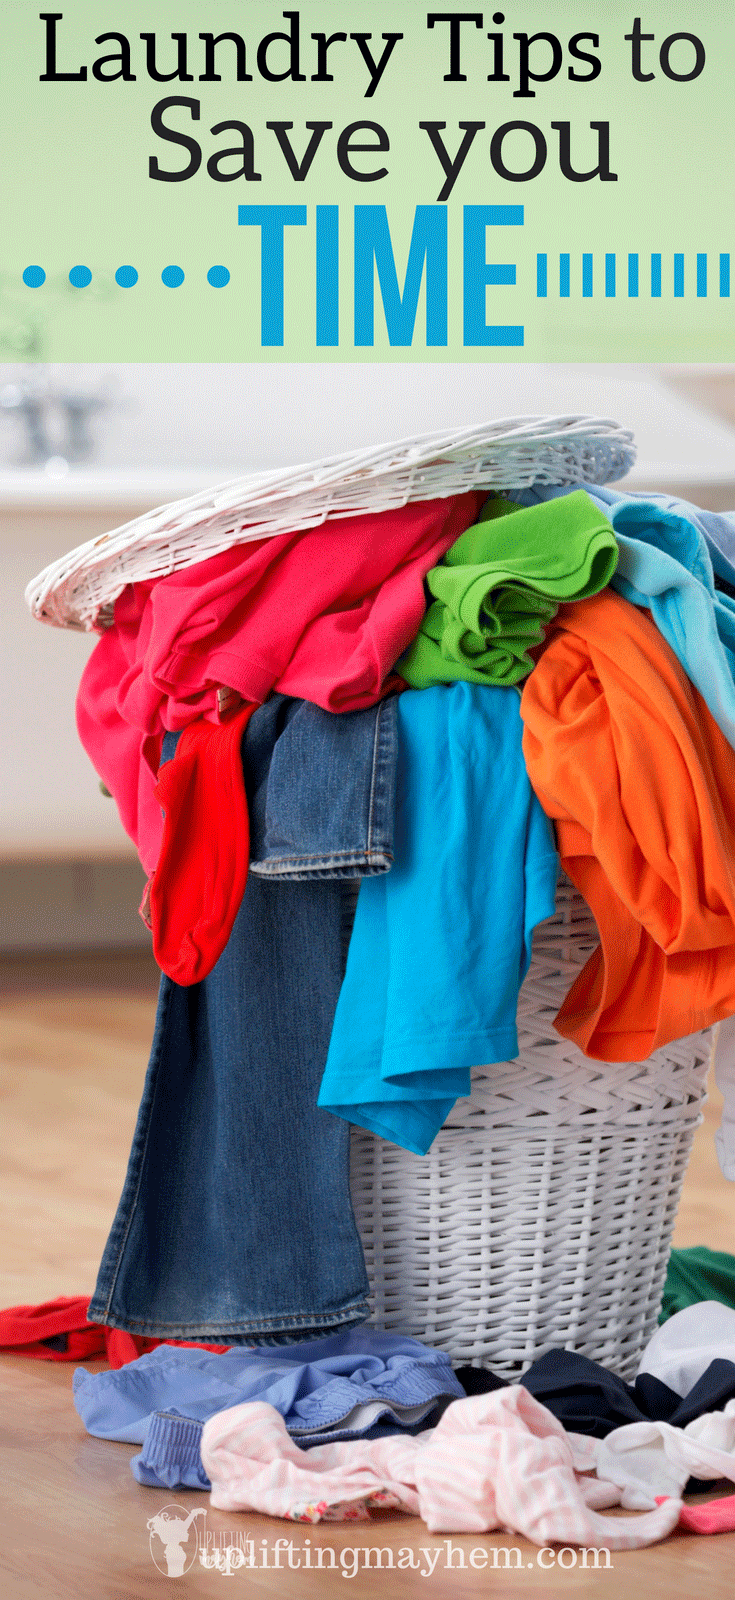 10 time saving tips to keep on top of your laundry. Home care tips, cleaning tips are great to have so your laundry doesn't overtake your life!